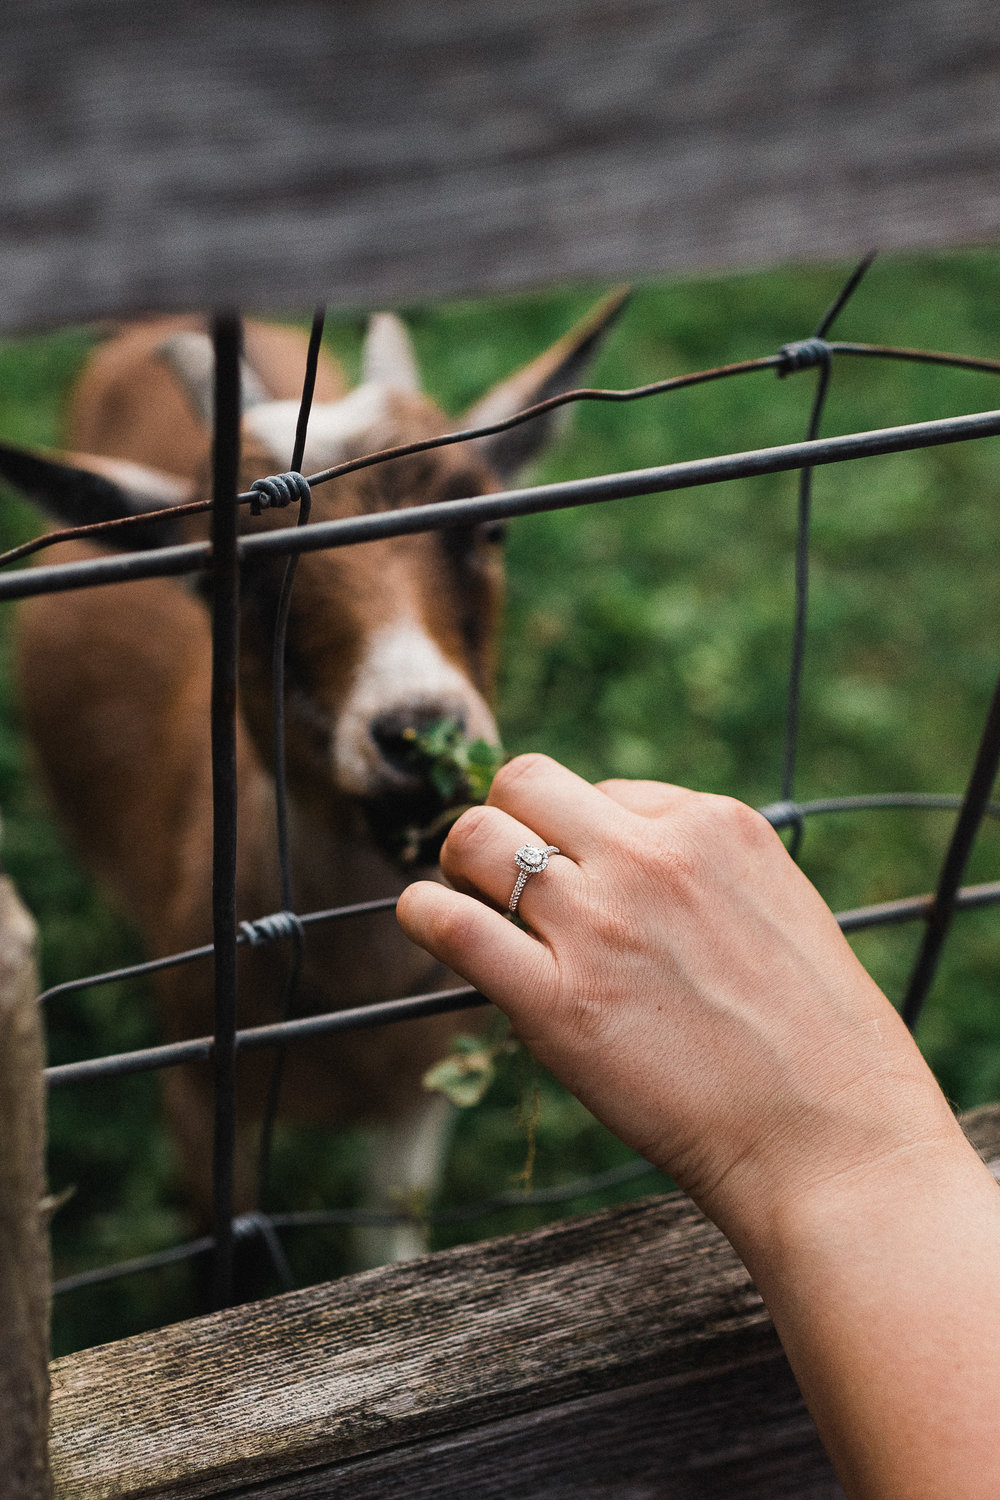 Woman shows her engagement ring as she feeds grass to a goat through a chain link fence.